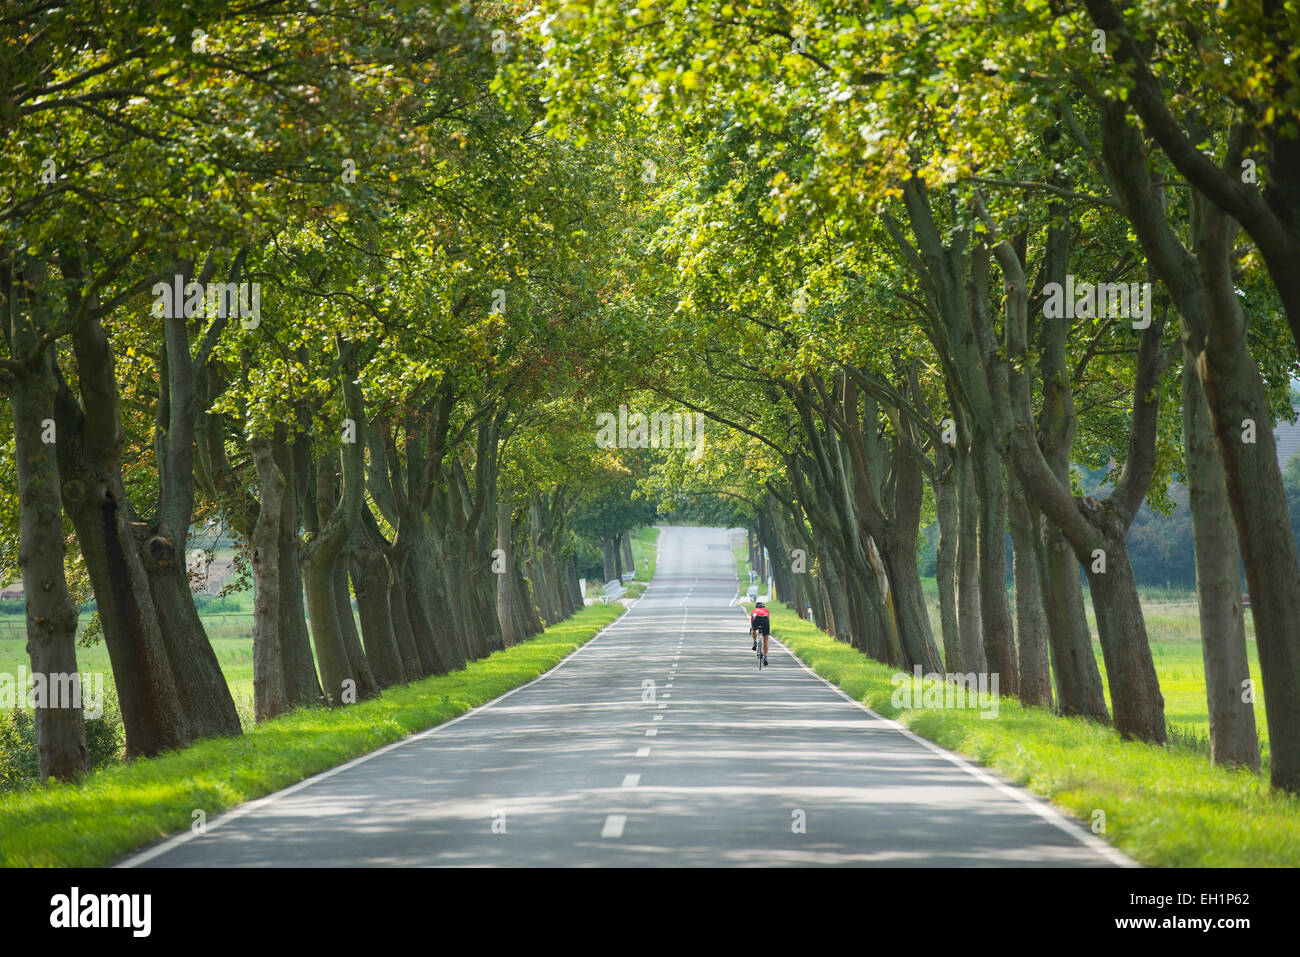 Maple Tree avenue, Maple Trees (Acer), between Hattorf and Beienrode, Lower Saxony, Germany - Stock Image